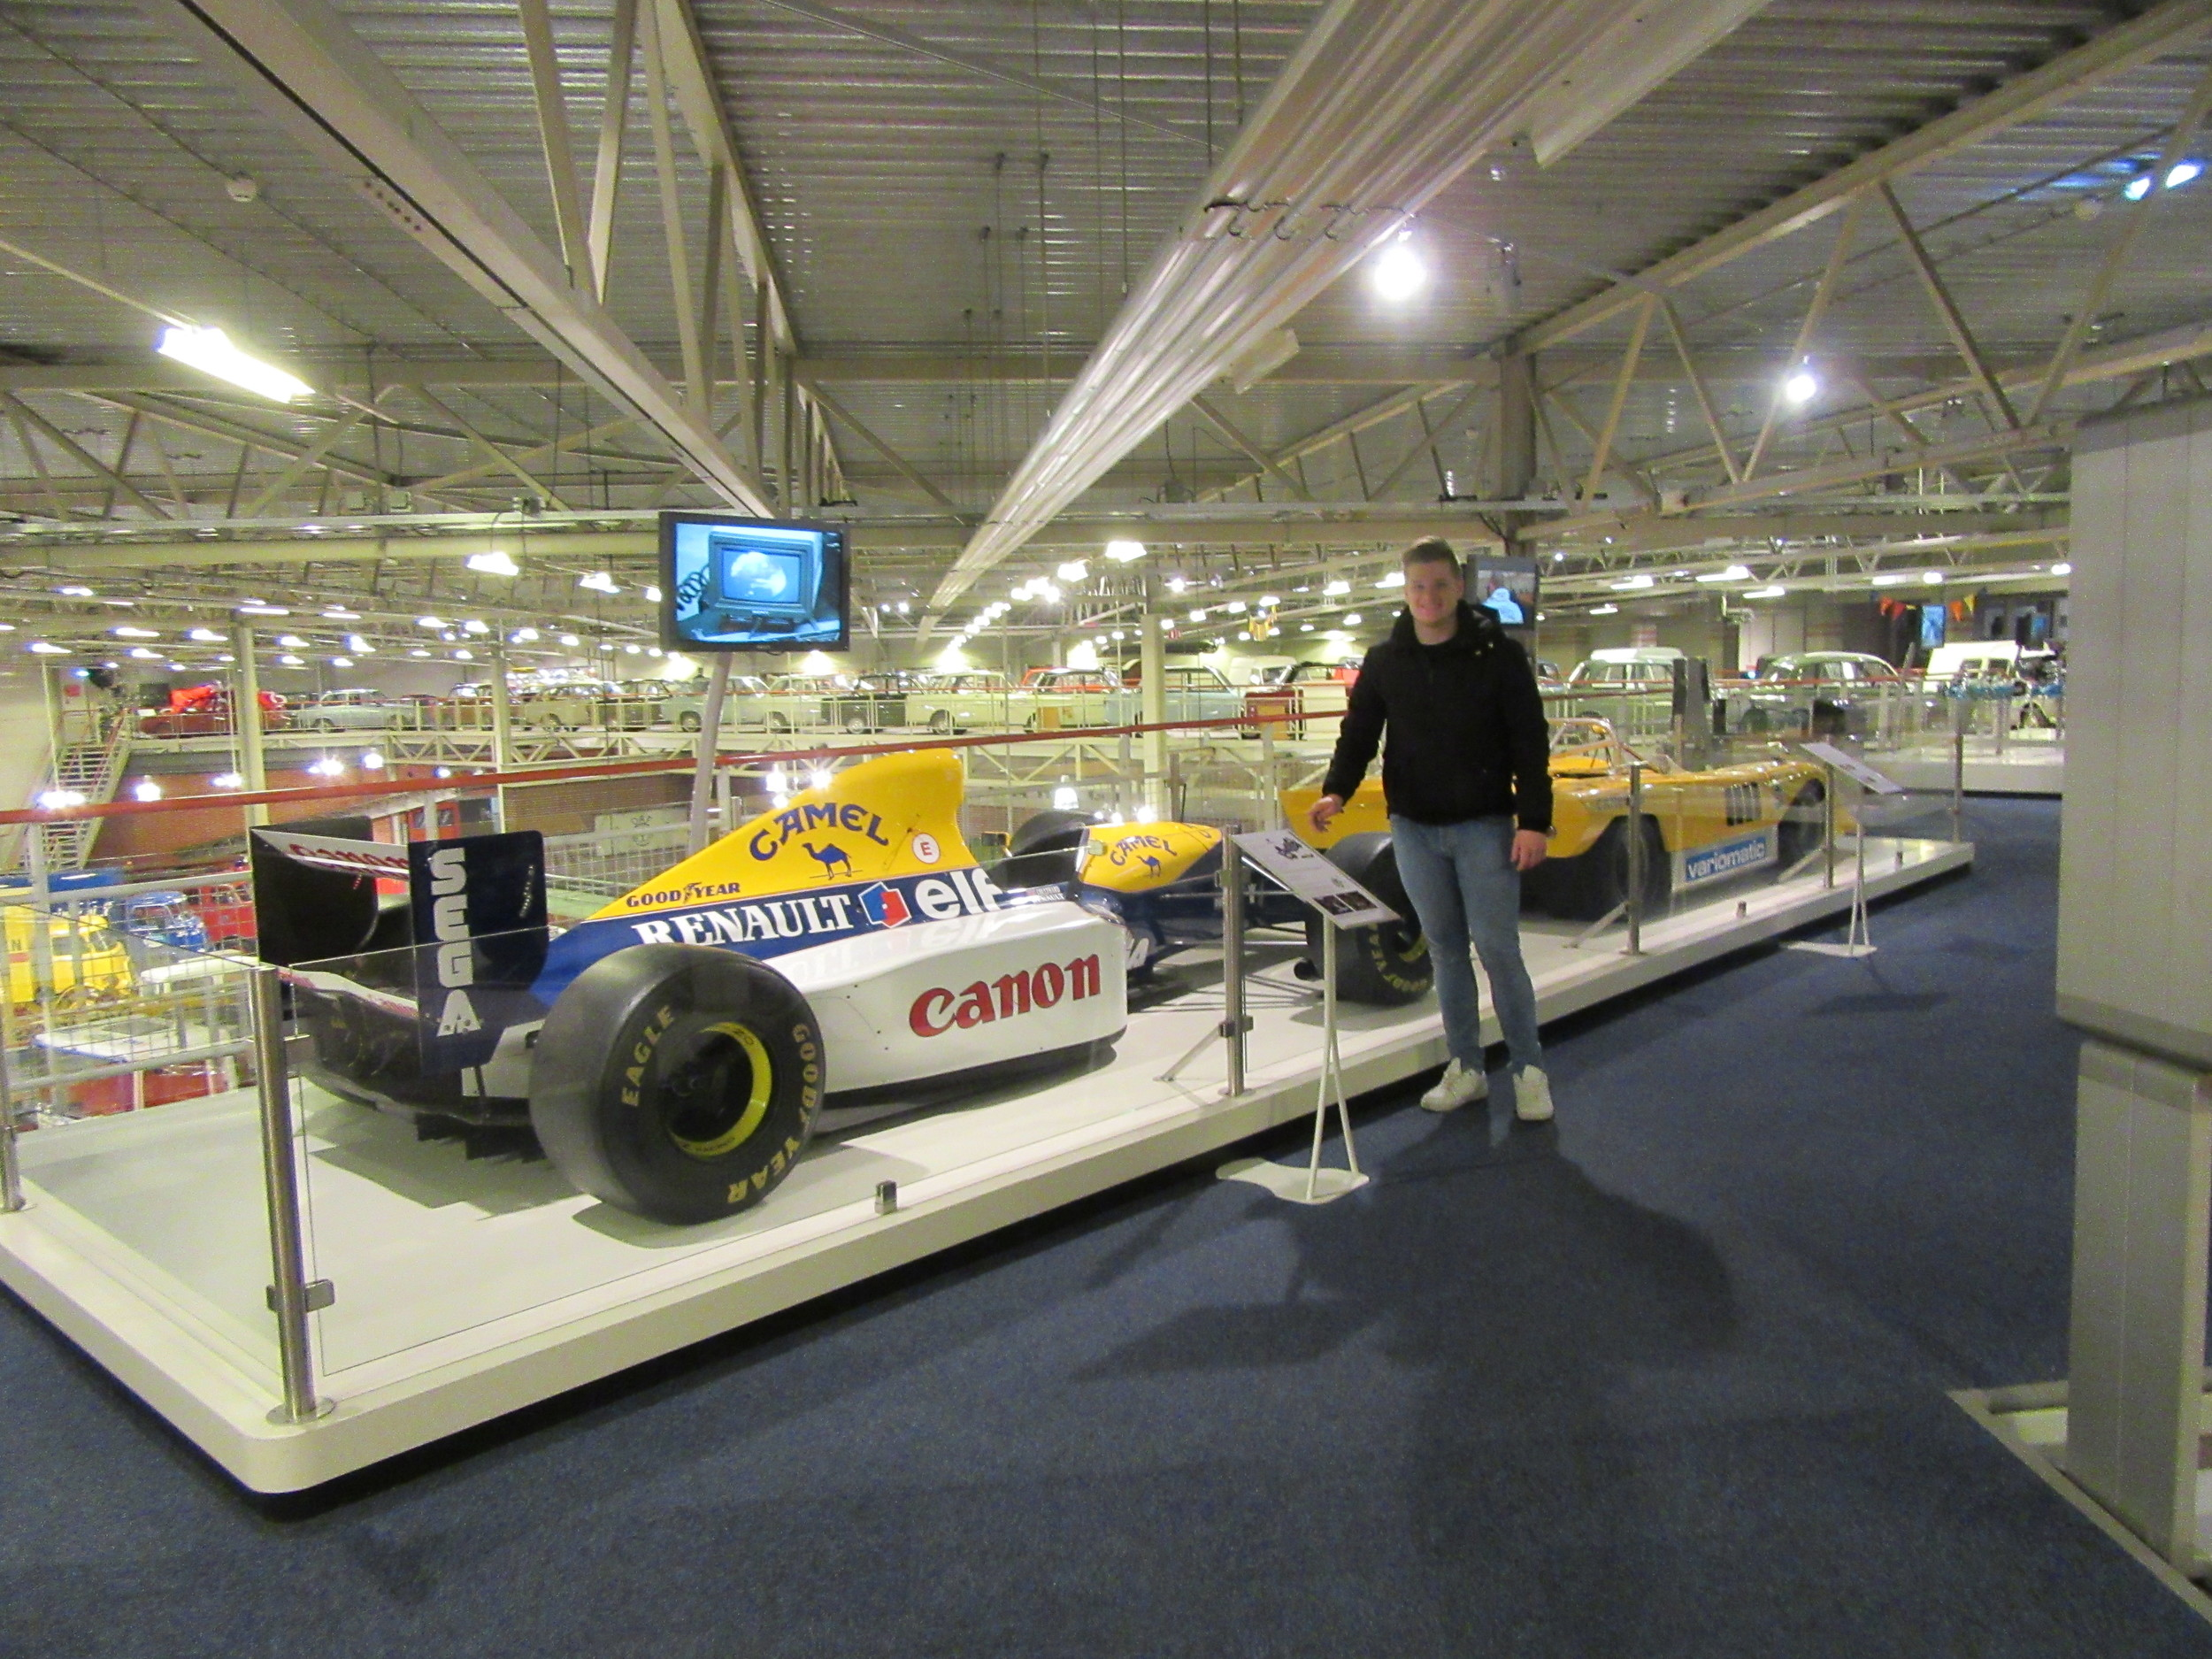 David Coulthard was Willams' test driver in 1993. Check out the video below to see the car in action!